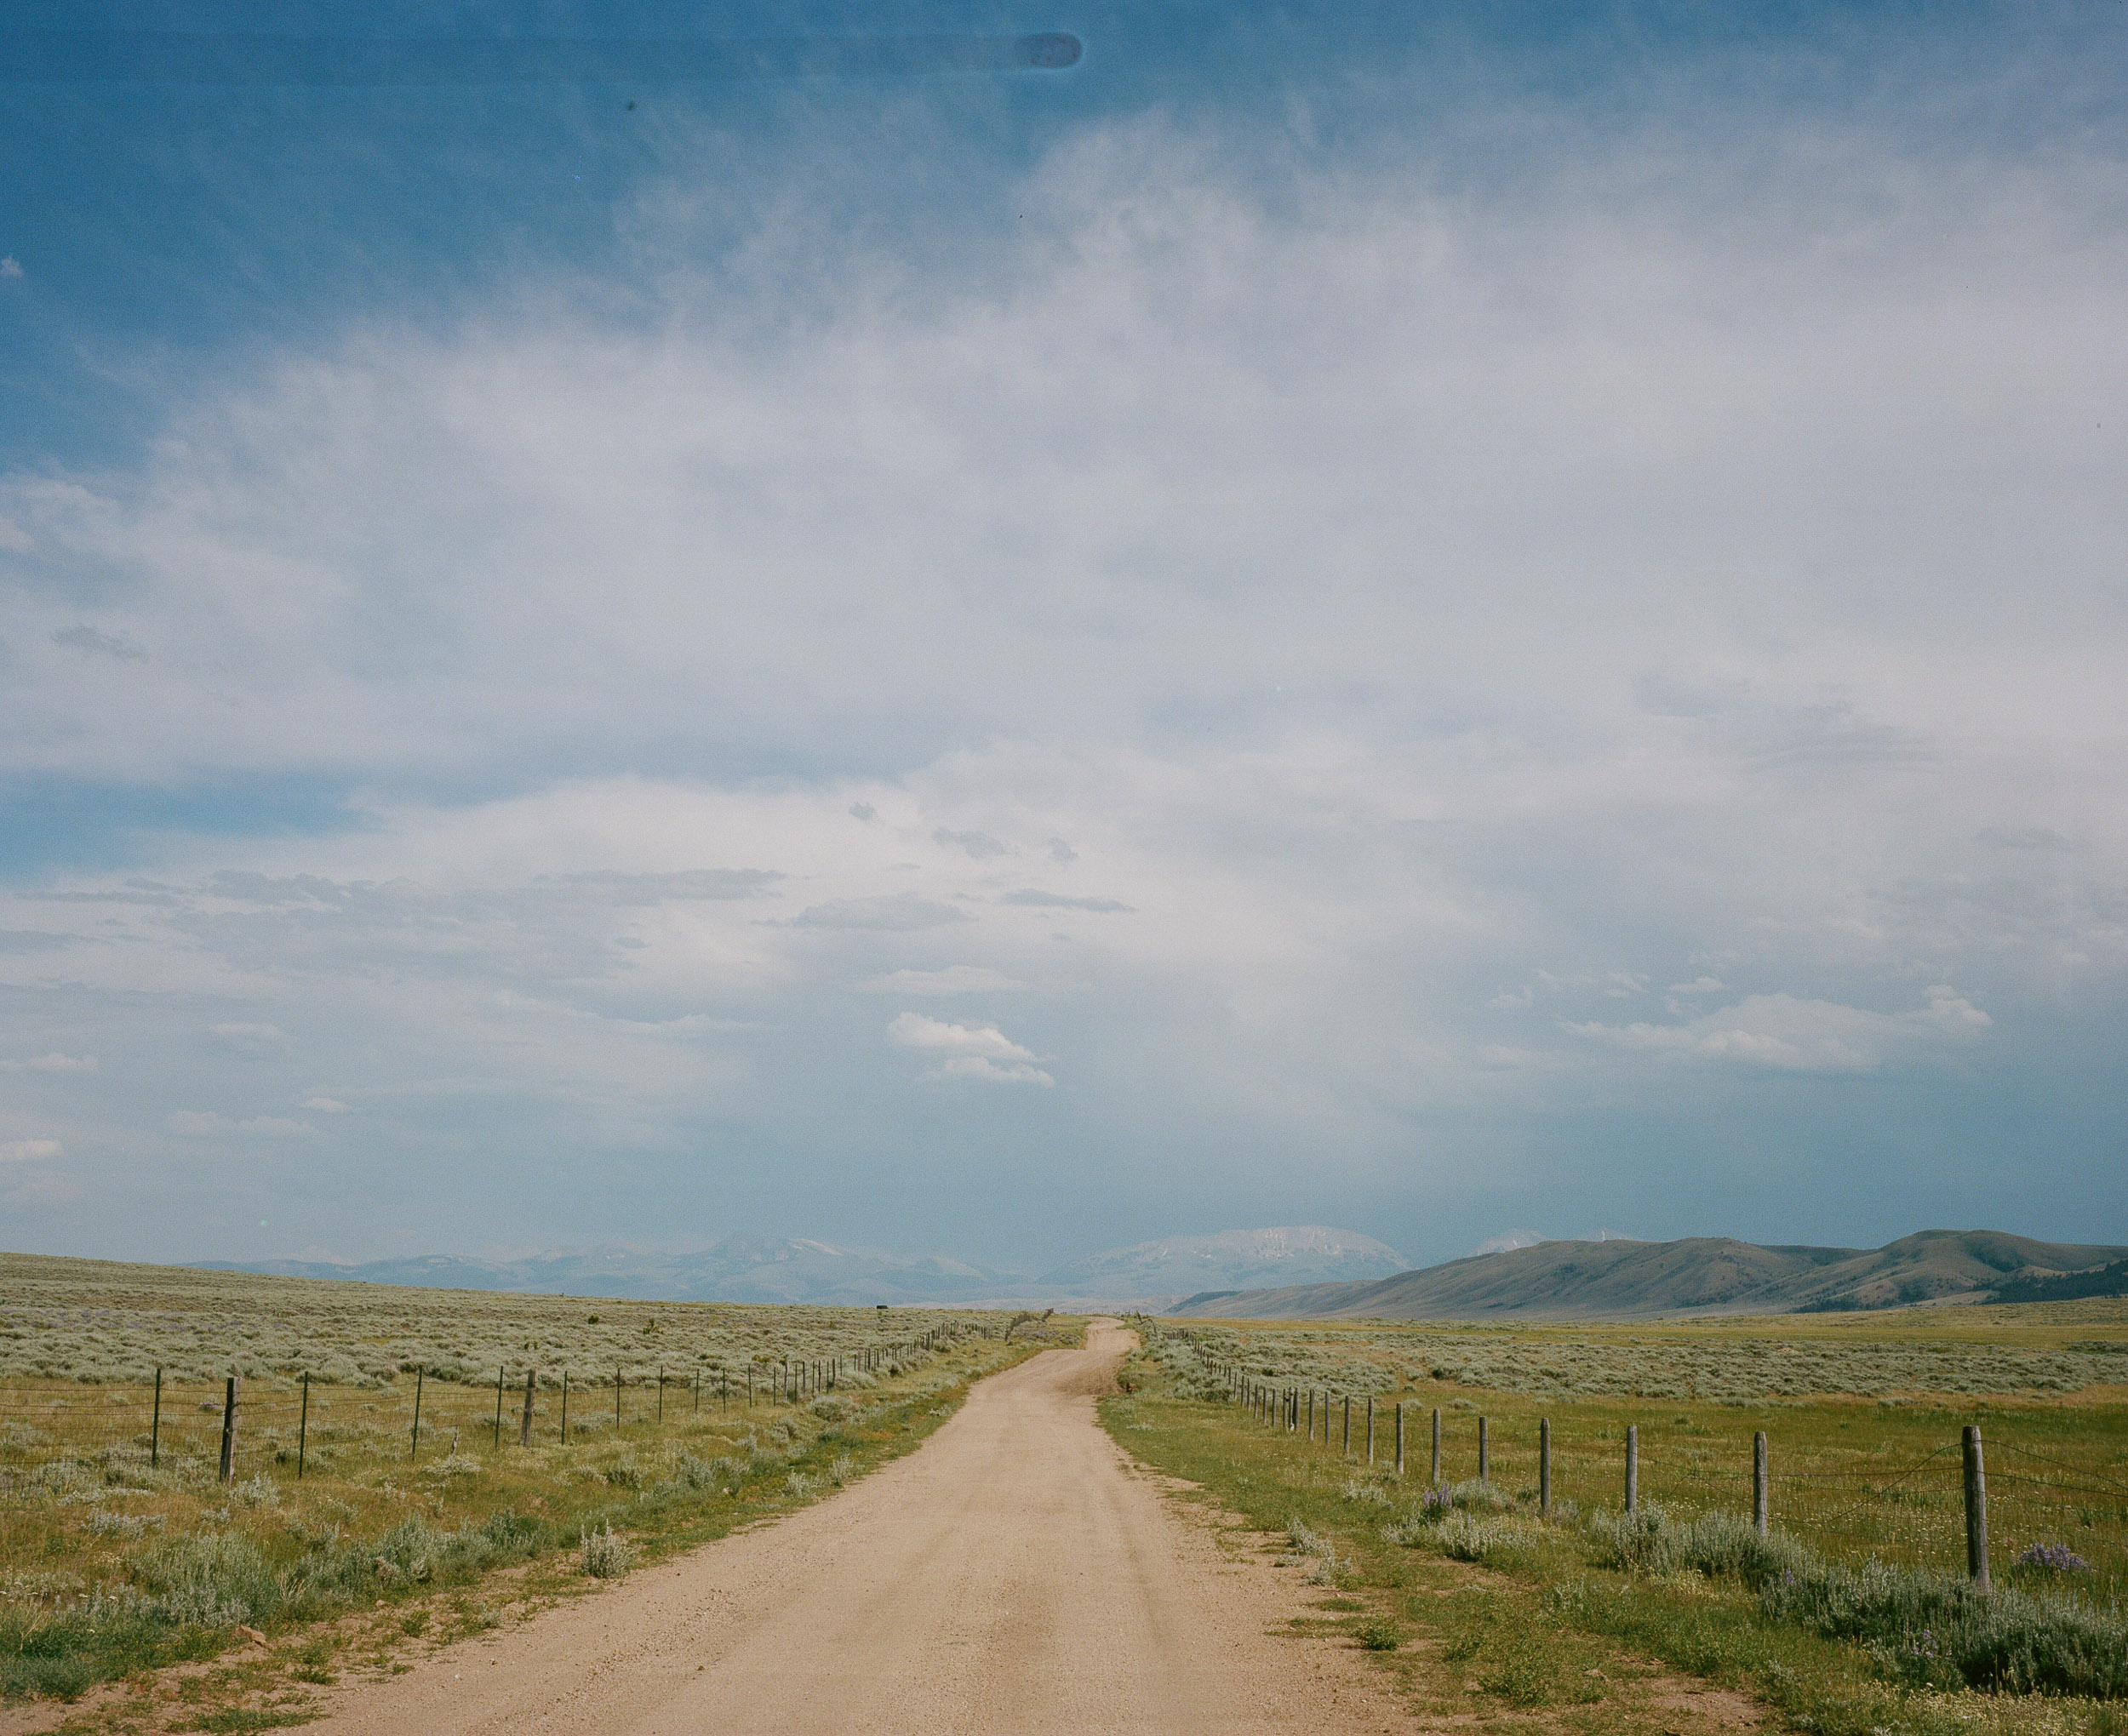 Long backroad in the country with mountains in the distance